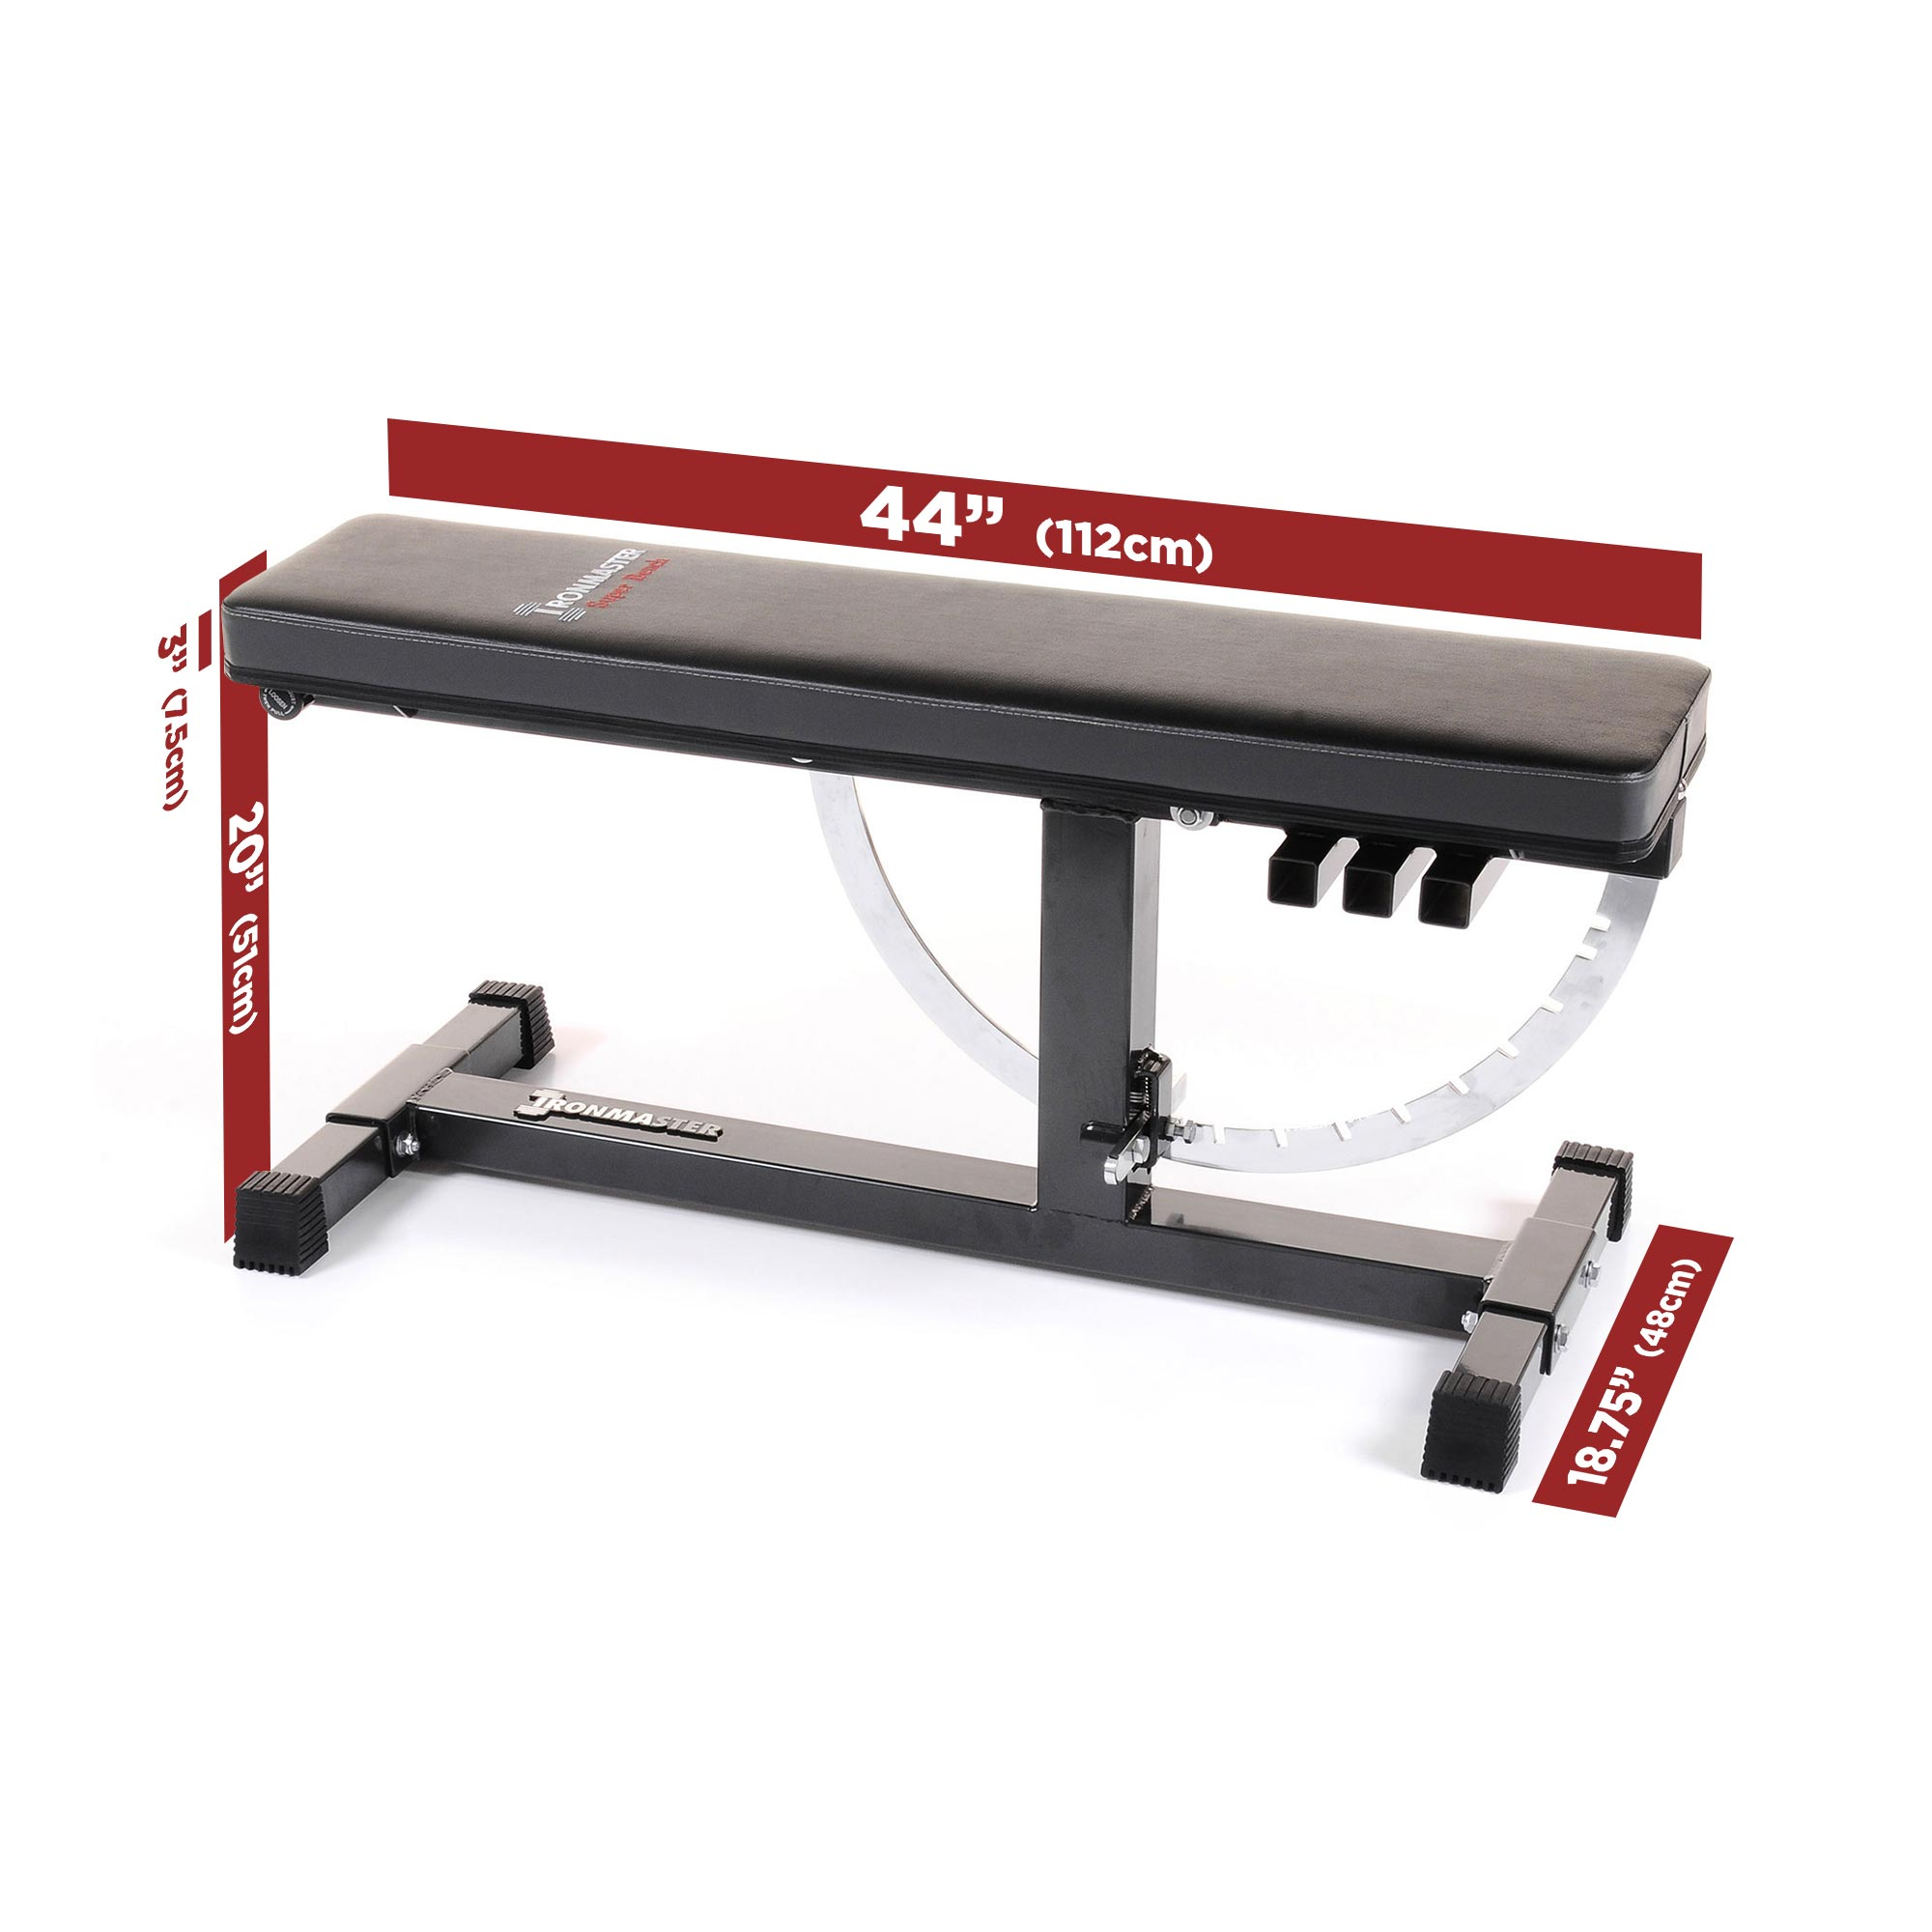 IronmasterUK Super Bench Specifications